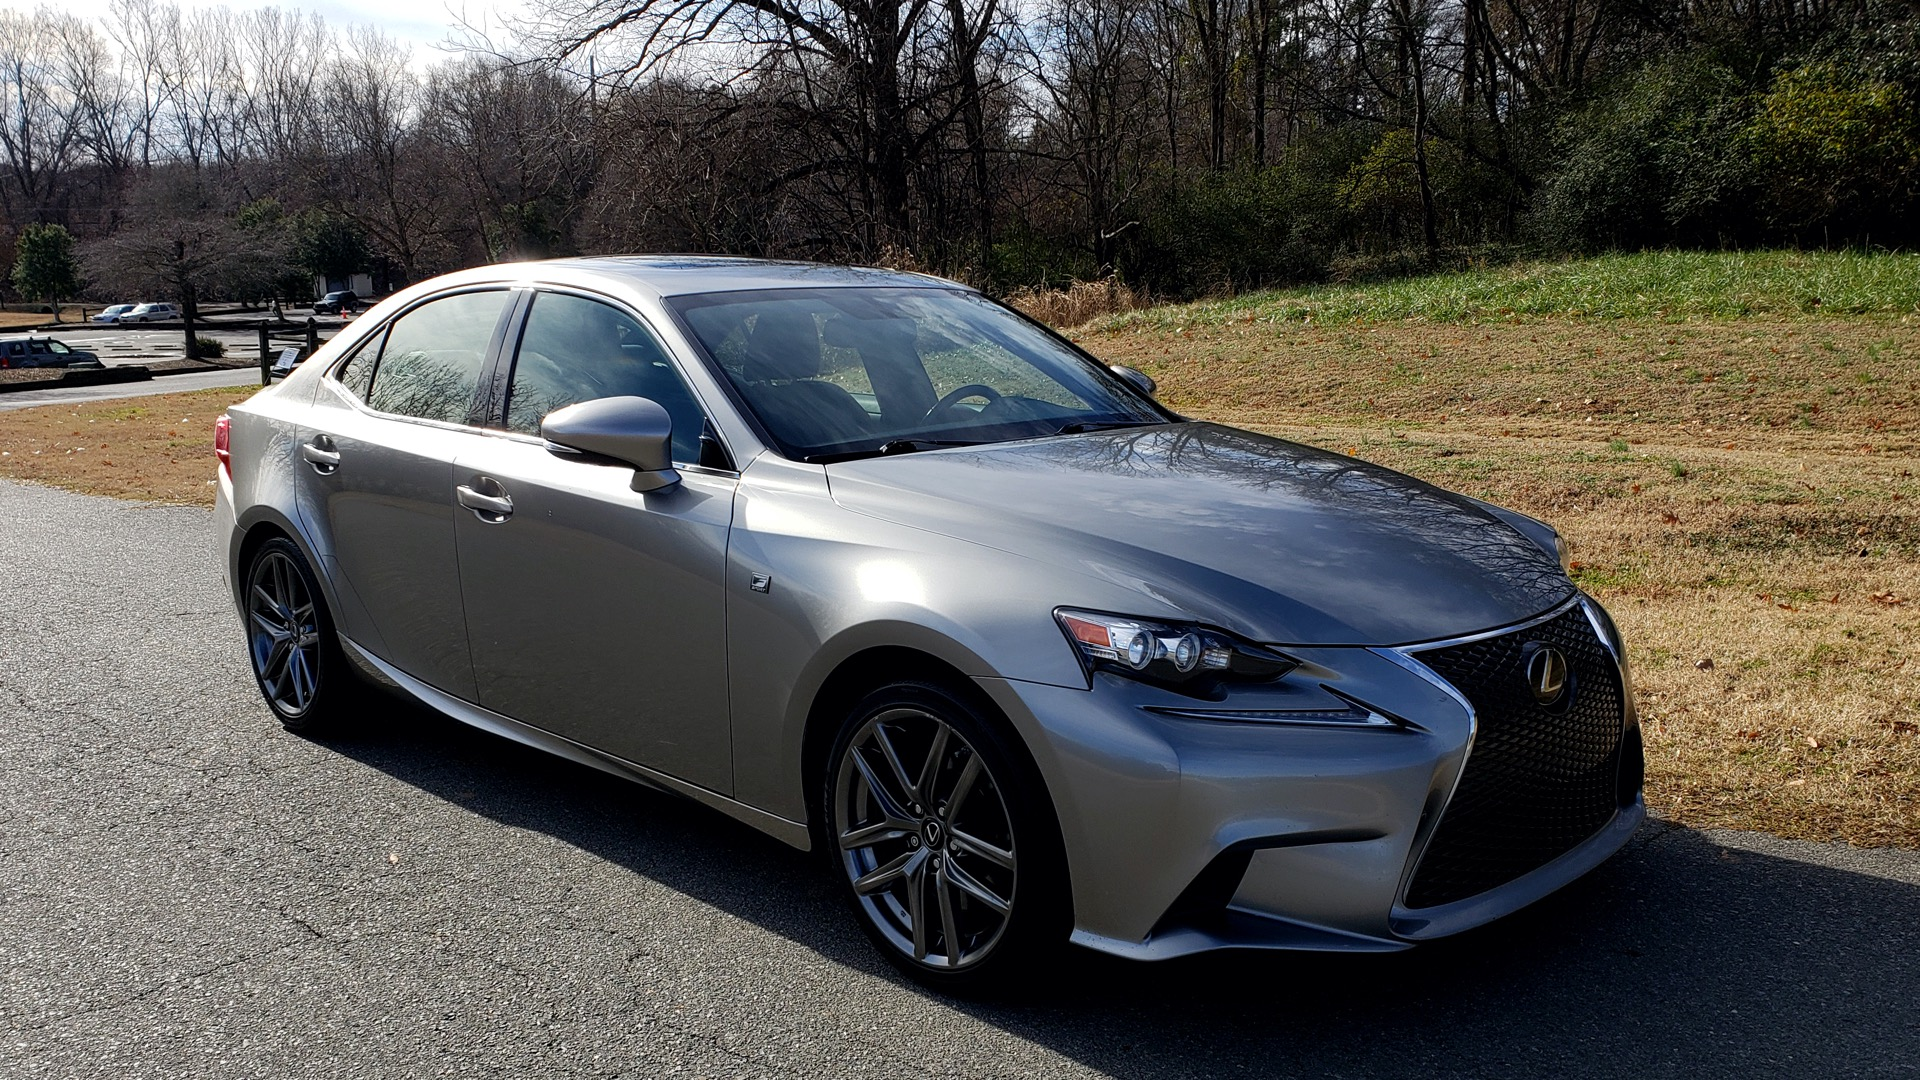 Used 2016 Lexus IS 200t F-SPORT / SUNROOF / NAV / BSM / DYNAMIC RADAR CRUISE for sale Sold at Formula Imports in Charlotte NC 28227 11